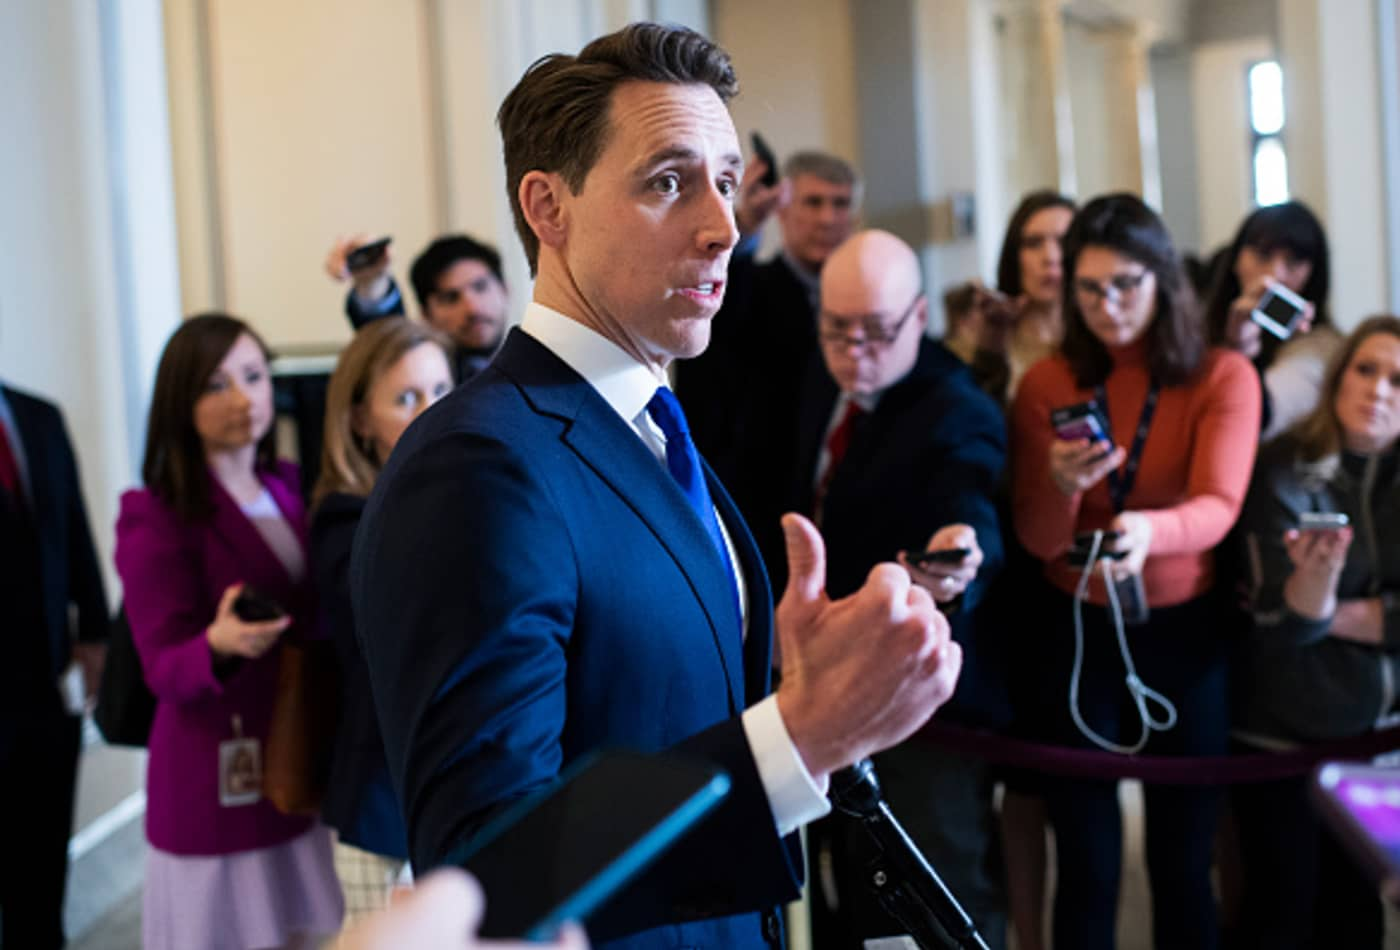 GOP Sen. Josh Hawley asks Twitter if fact checks are meant to target Trump for 'political reasons'